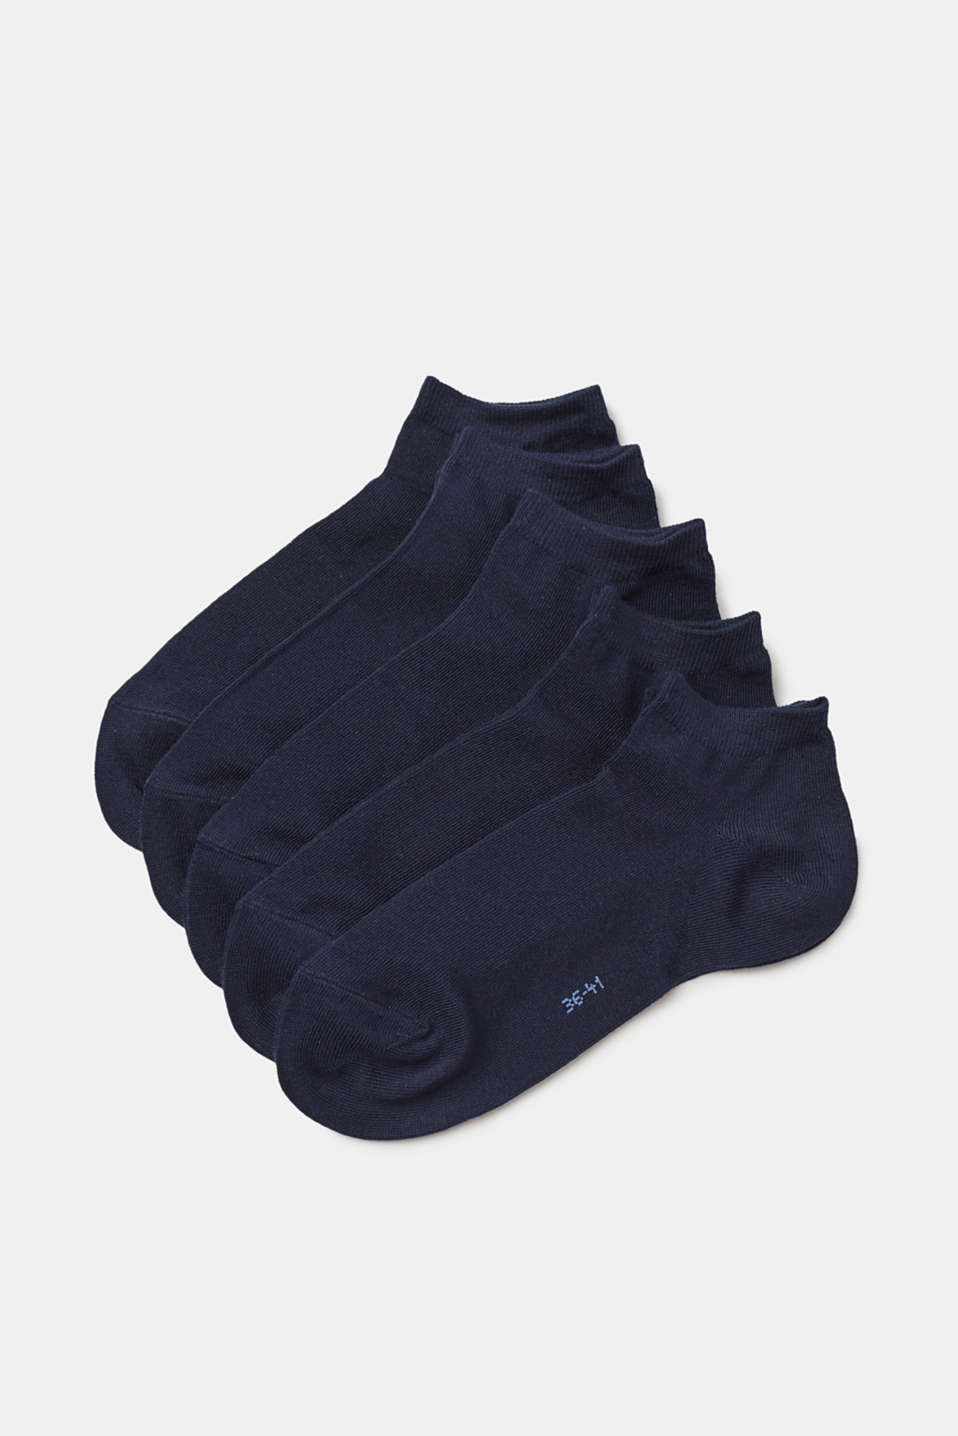 Esprit - 5 pairs of plain trainer socks